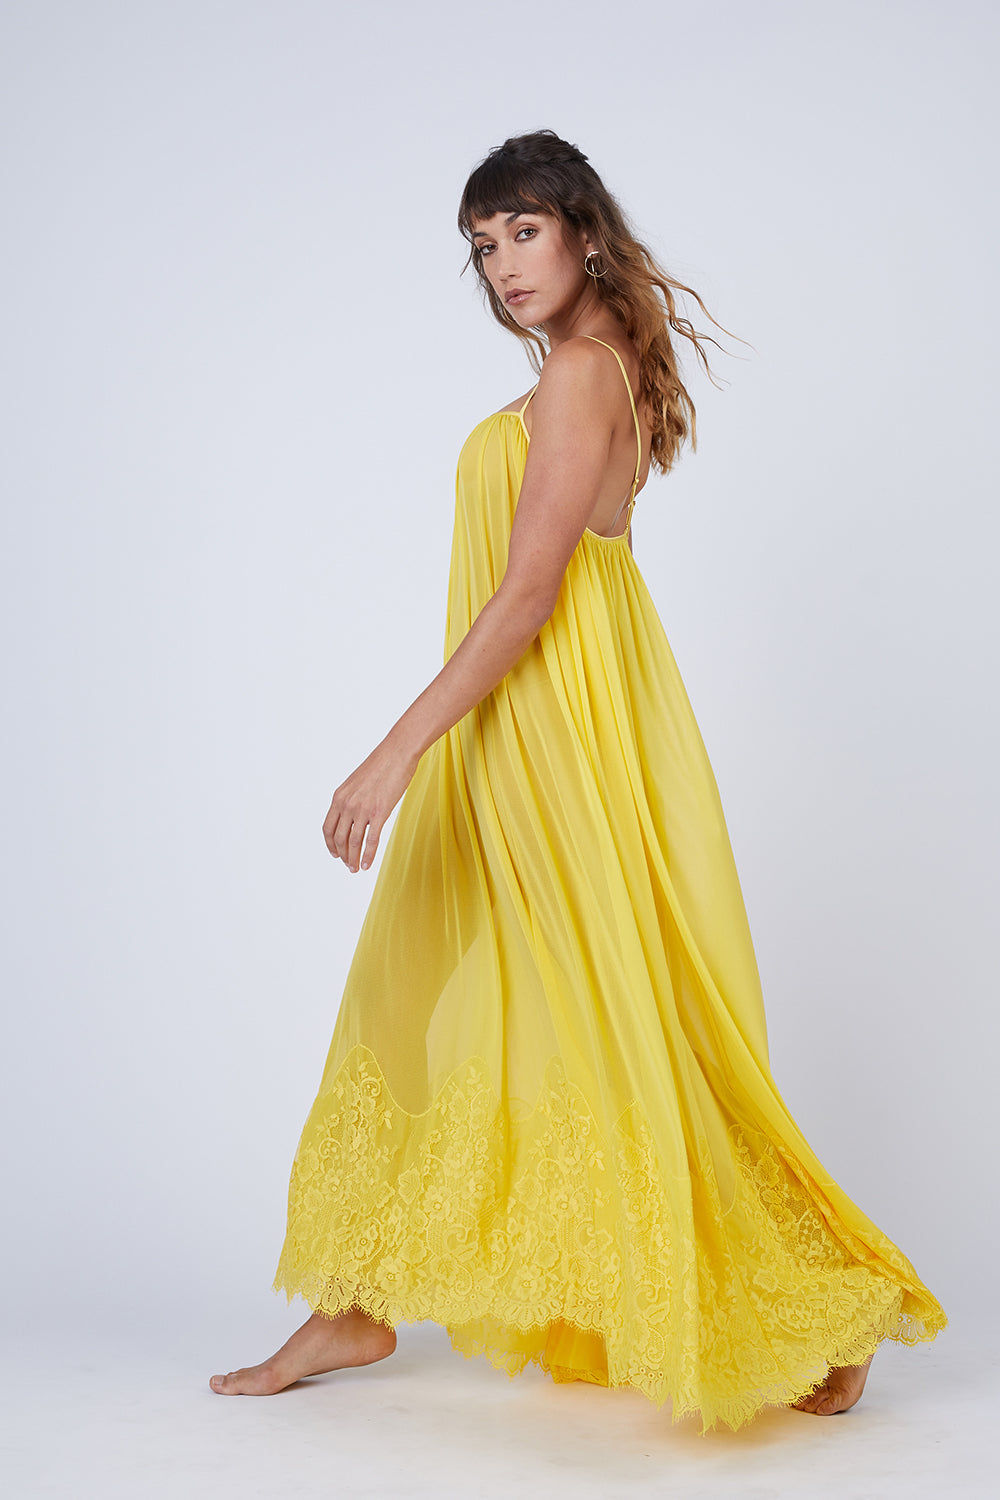 WE ARE HAH Mad Maxi Sheer Mesh Dress - Lemon Drop Dress   Lemon Drop  Hot As Hell Mad Maxi Dress - Lemon Drop Sheer Maxi Dress Straight Neckline Spaghetti Straps Lace End Detail  Easy Transition From Beach to Street Front View